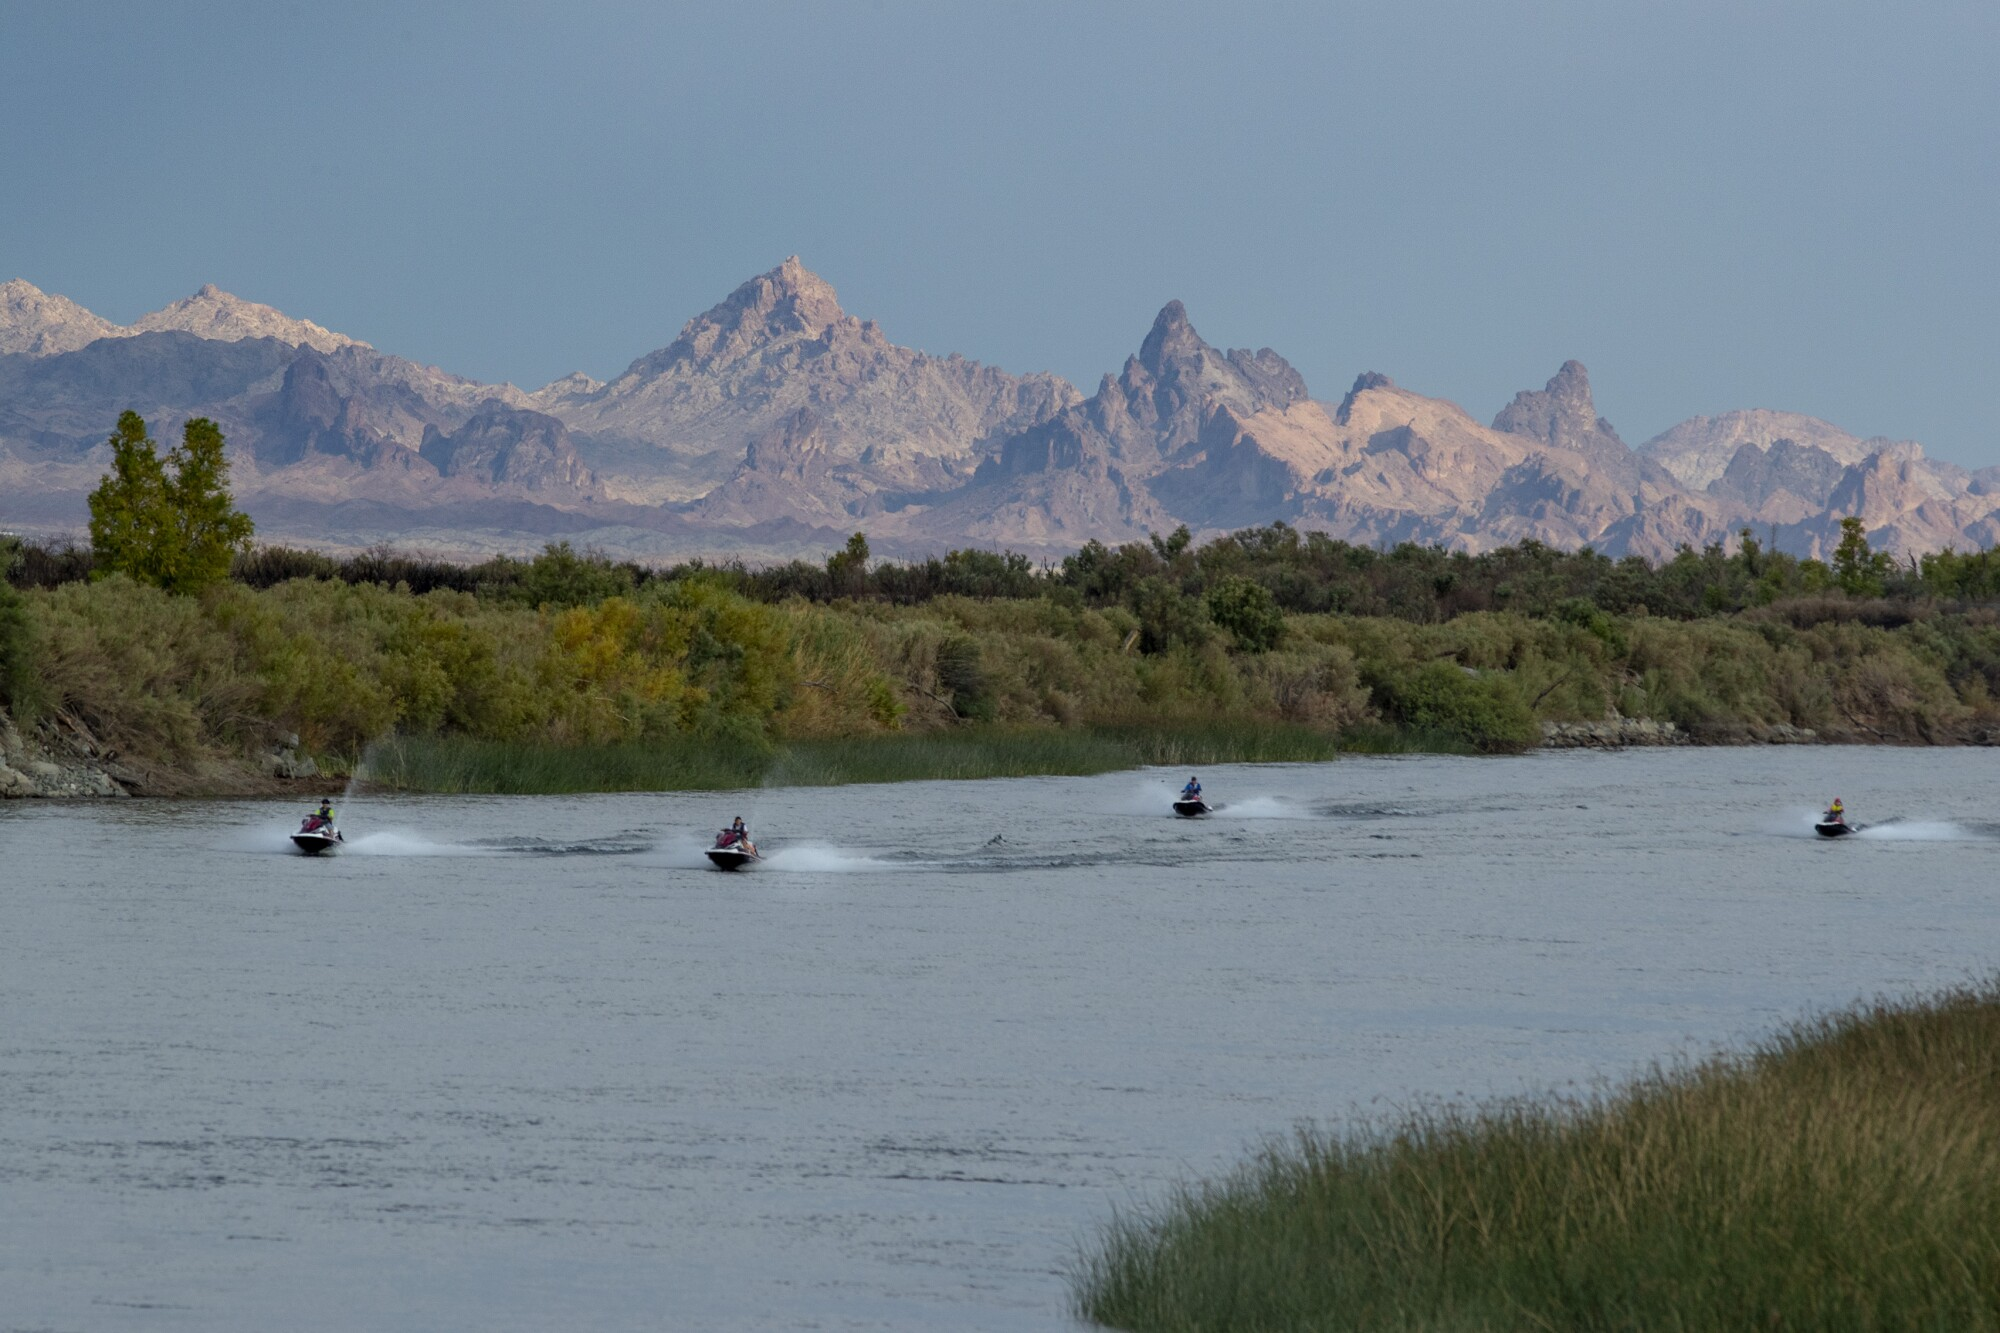 Jet skiers power up the Colorado River against a backdrop of The Needles